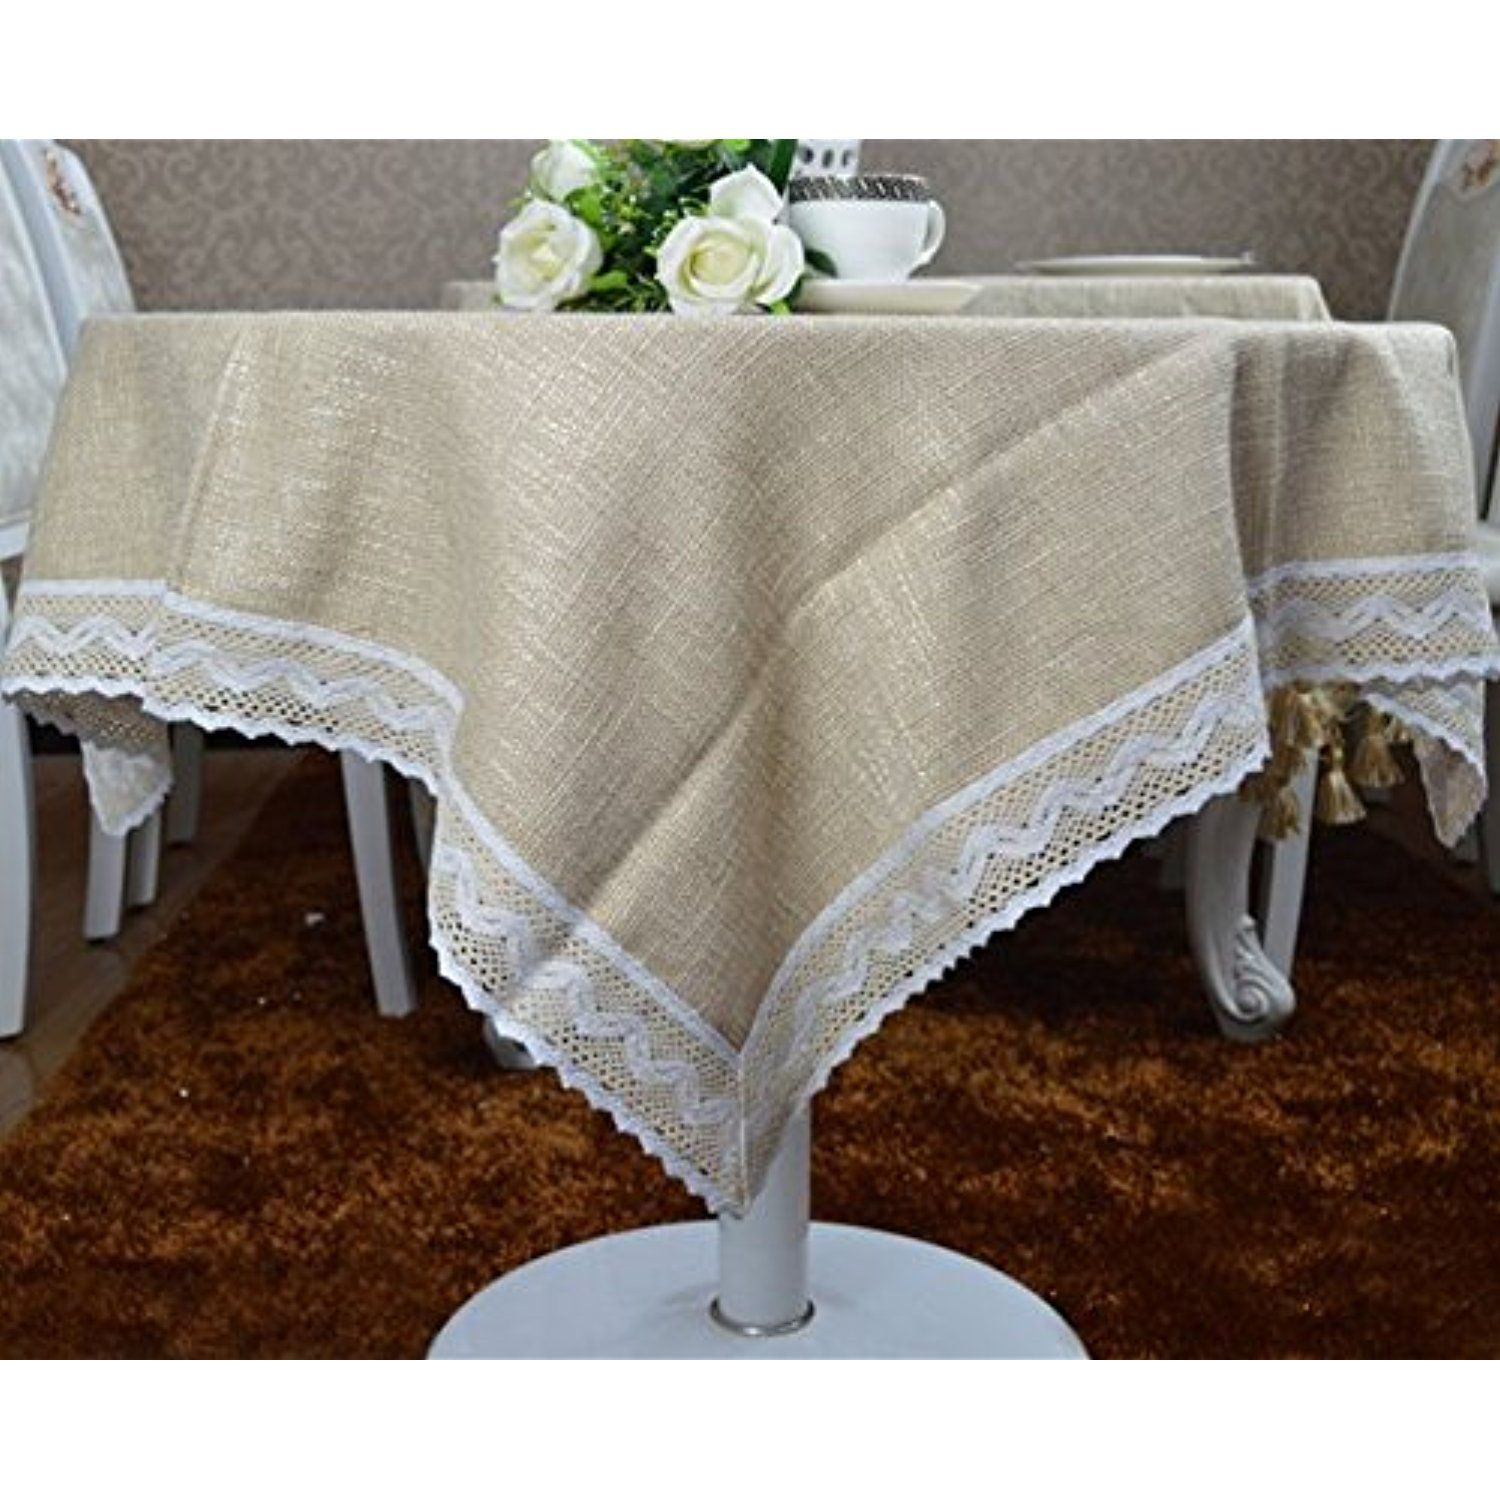 Situmi tablecloth table cover simple style tablecloth cotton dining table cloth 150ã 220cm